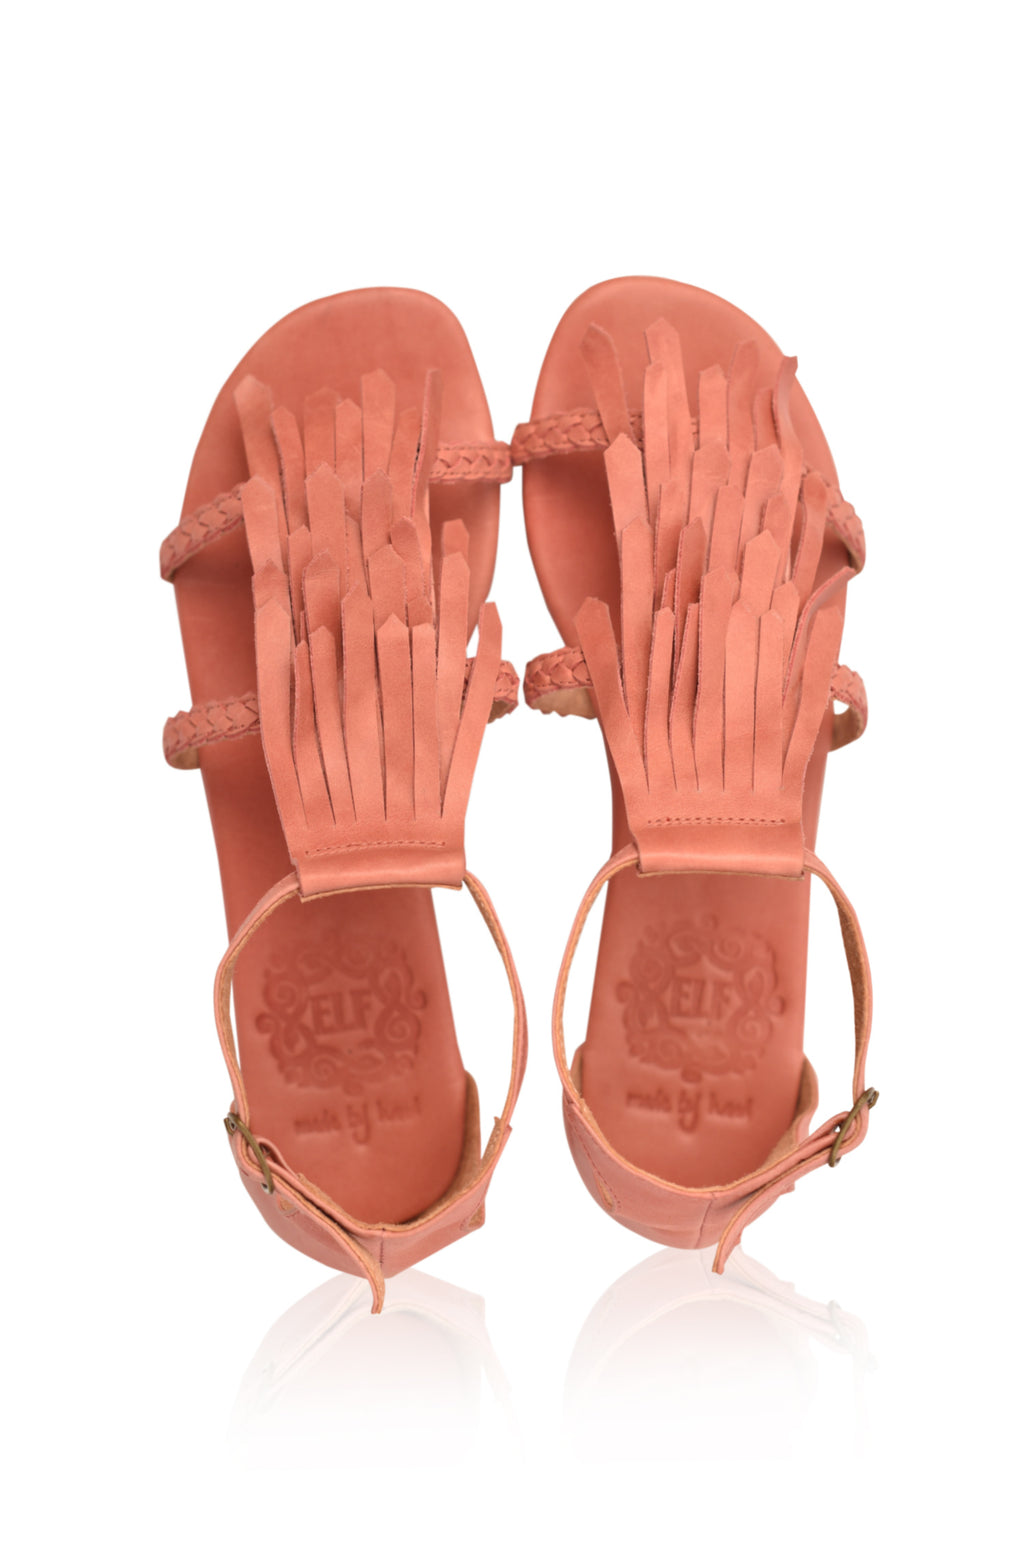 Summer lush Strappy Sandals (Sz. 9.5)